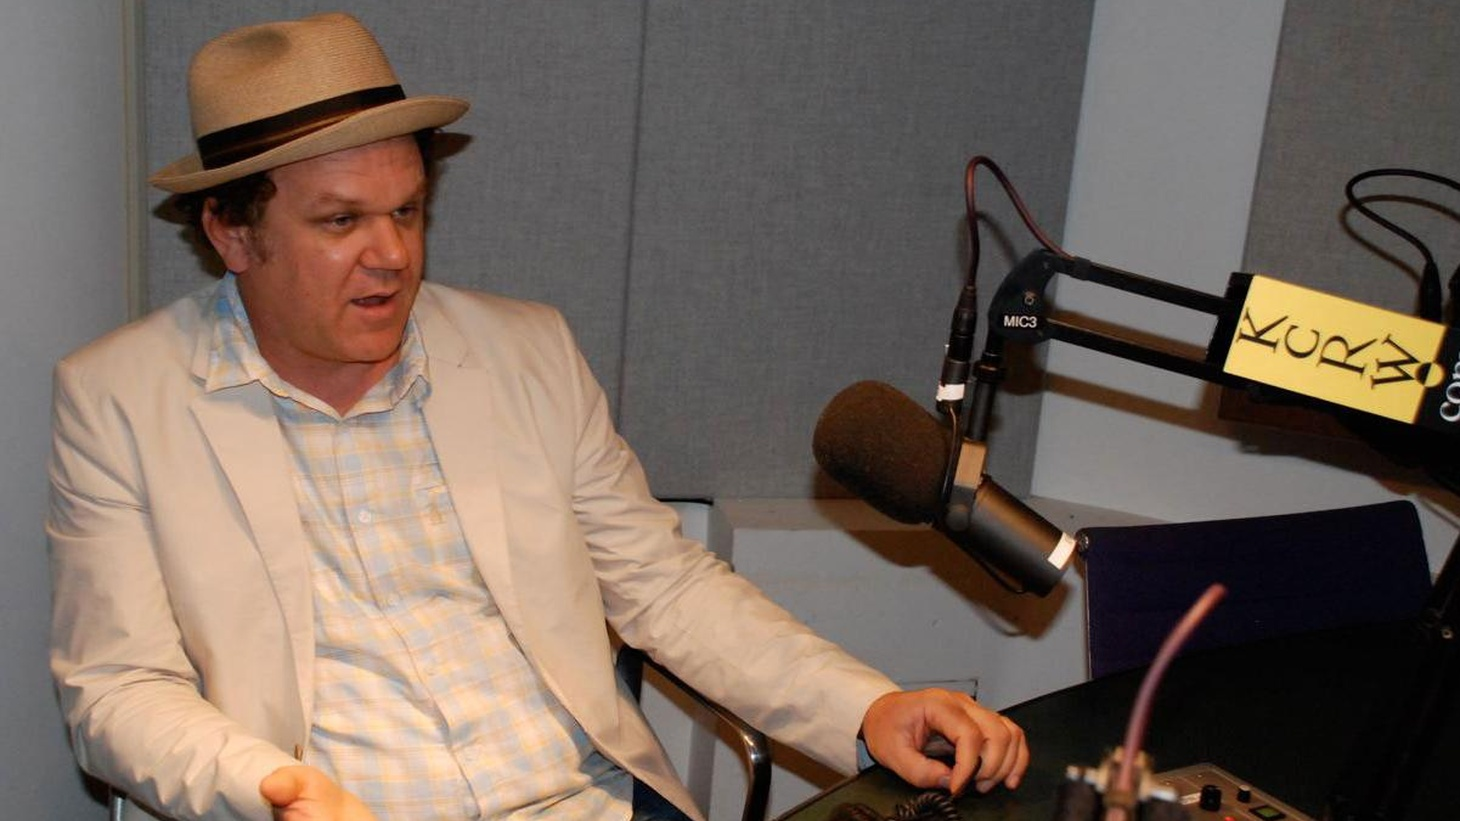 Elvis hosts actor John C. Reilly (Magnolia, Boogie Nights, Criminal) to talk about his latest feature, Cyrus, directed by Mark and Jay Duplass, in which he plays the lead role, along side Jonah Hill, Marisa Tomei and Catherine Keener.